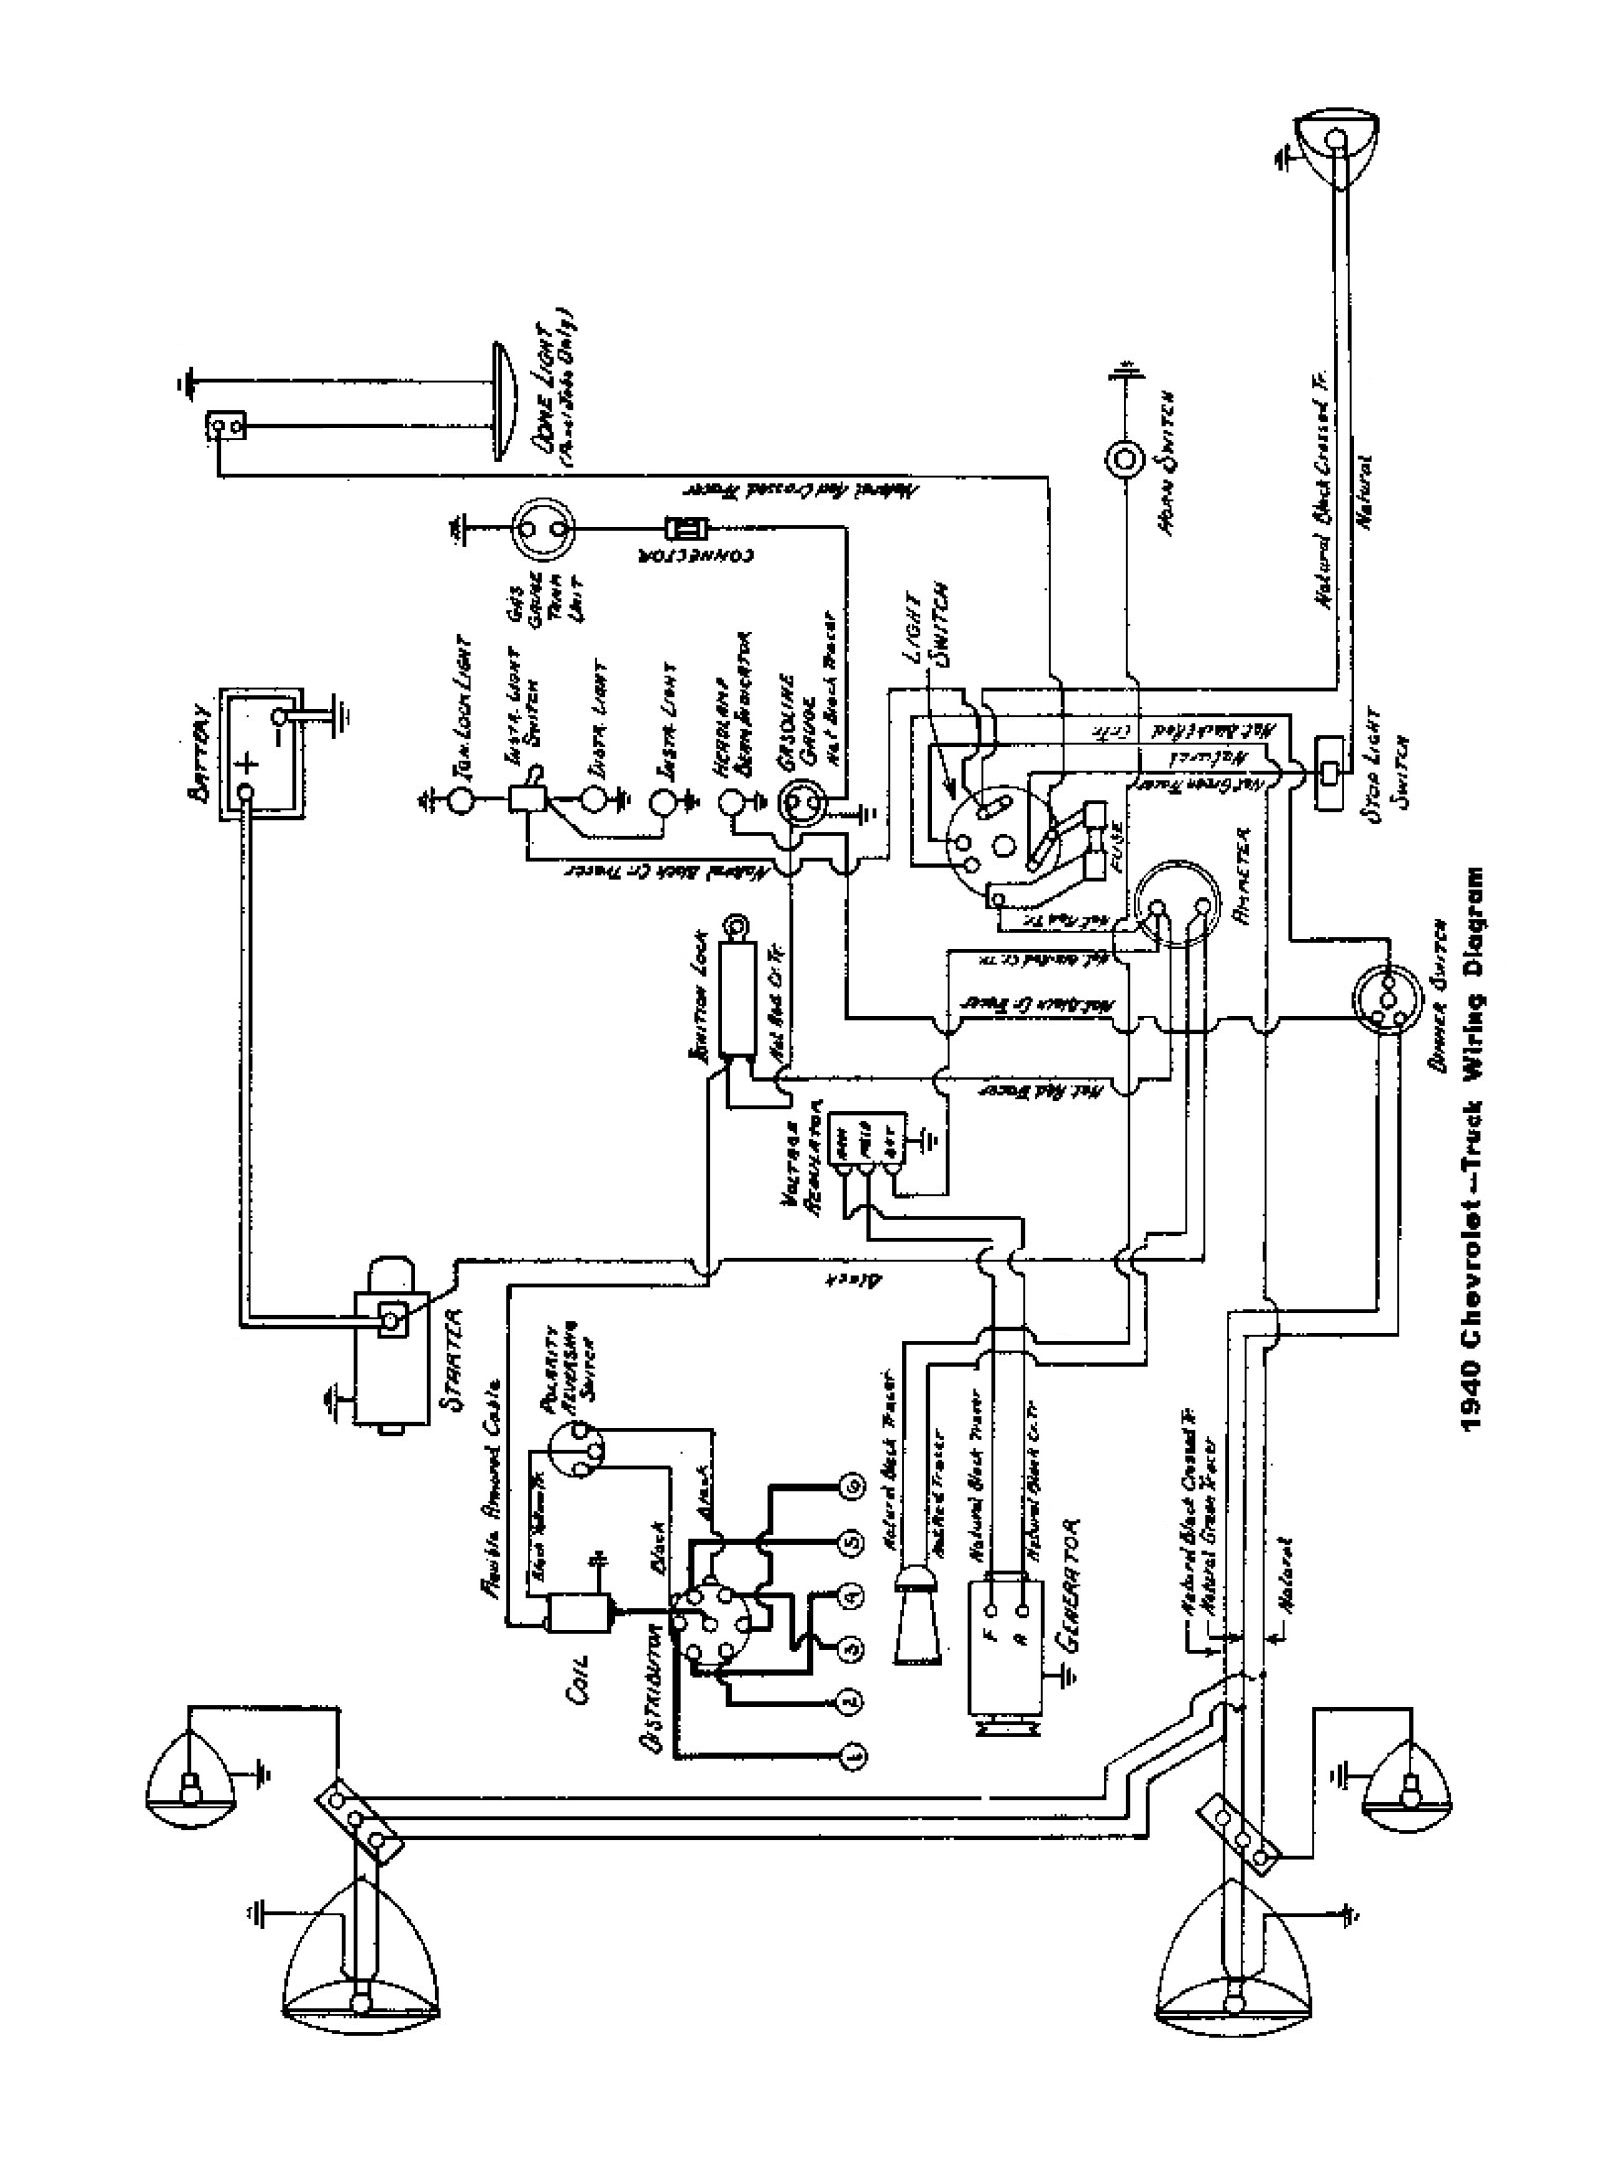 1957 Pontiac Wiring Harness Nice Place To Get Diagram Hayabusa In Addition Mastercraft On 1956 Library Rh 31 Codingcommunity De 1955